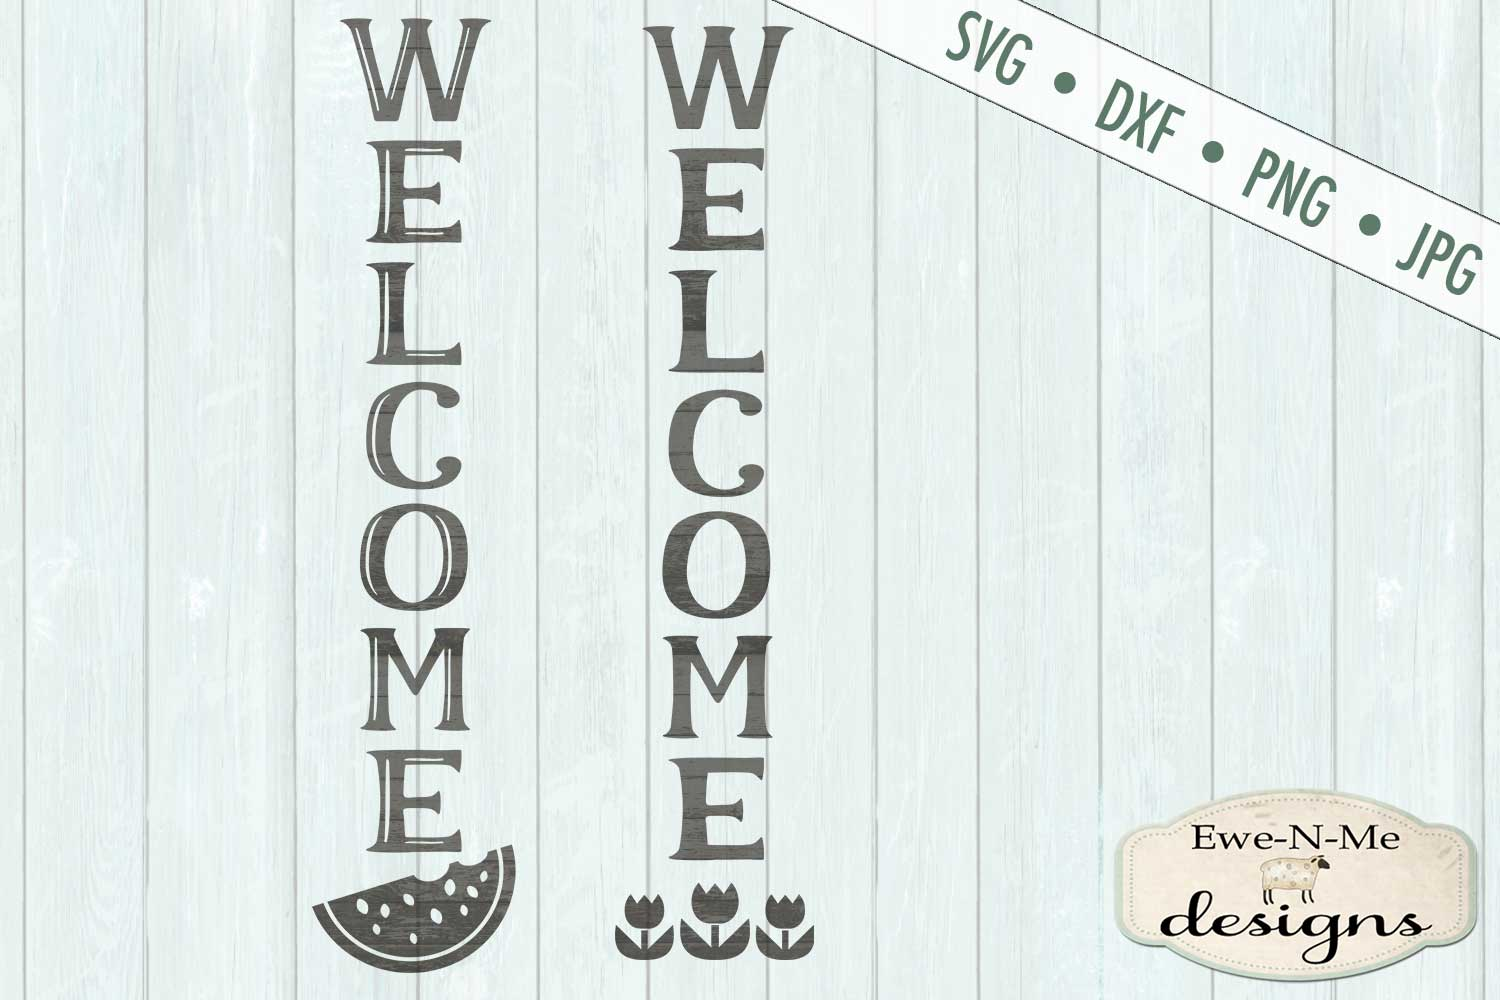 Welcome Vertical Porch Sign Tulips Watermelon SVG DXF Files example image 2